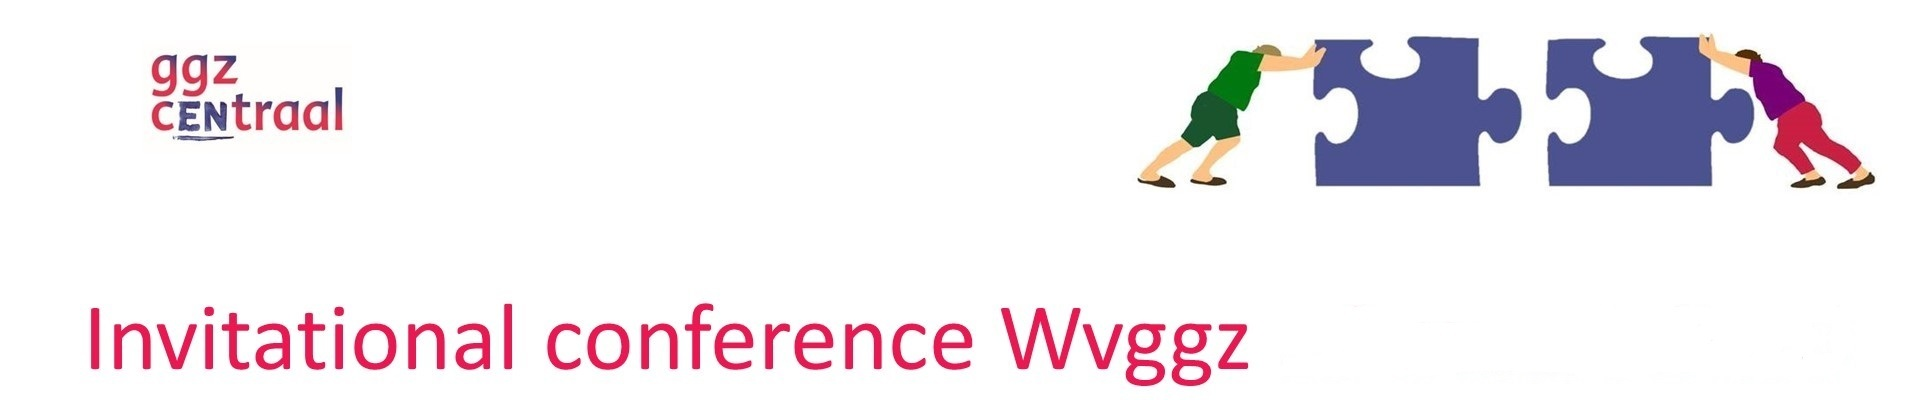 Invitational conference Wvggz 14 september